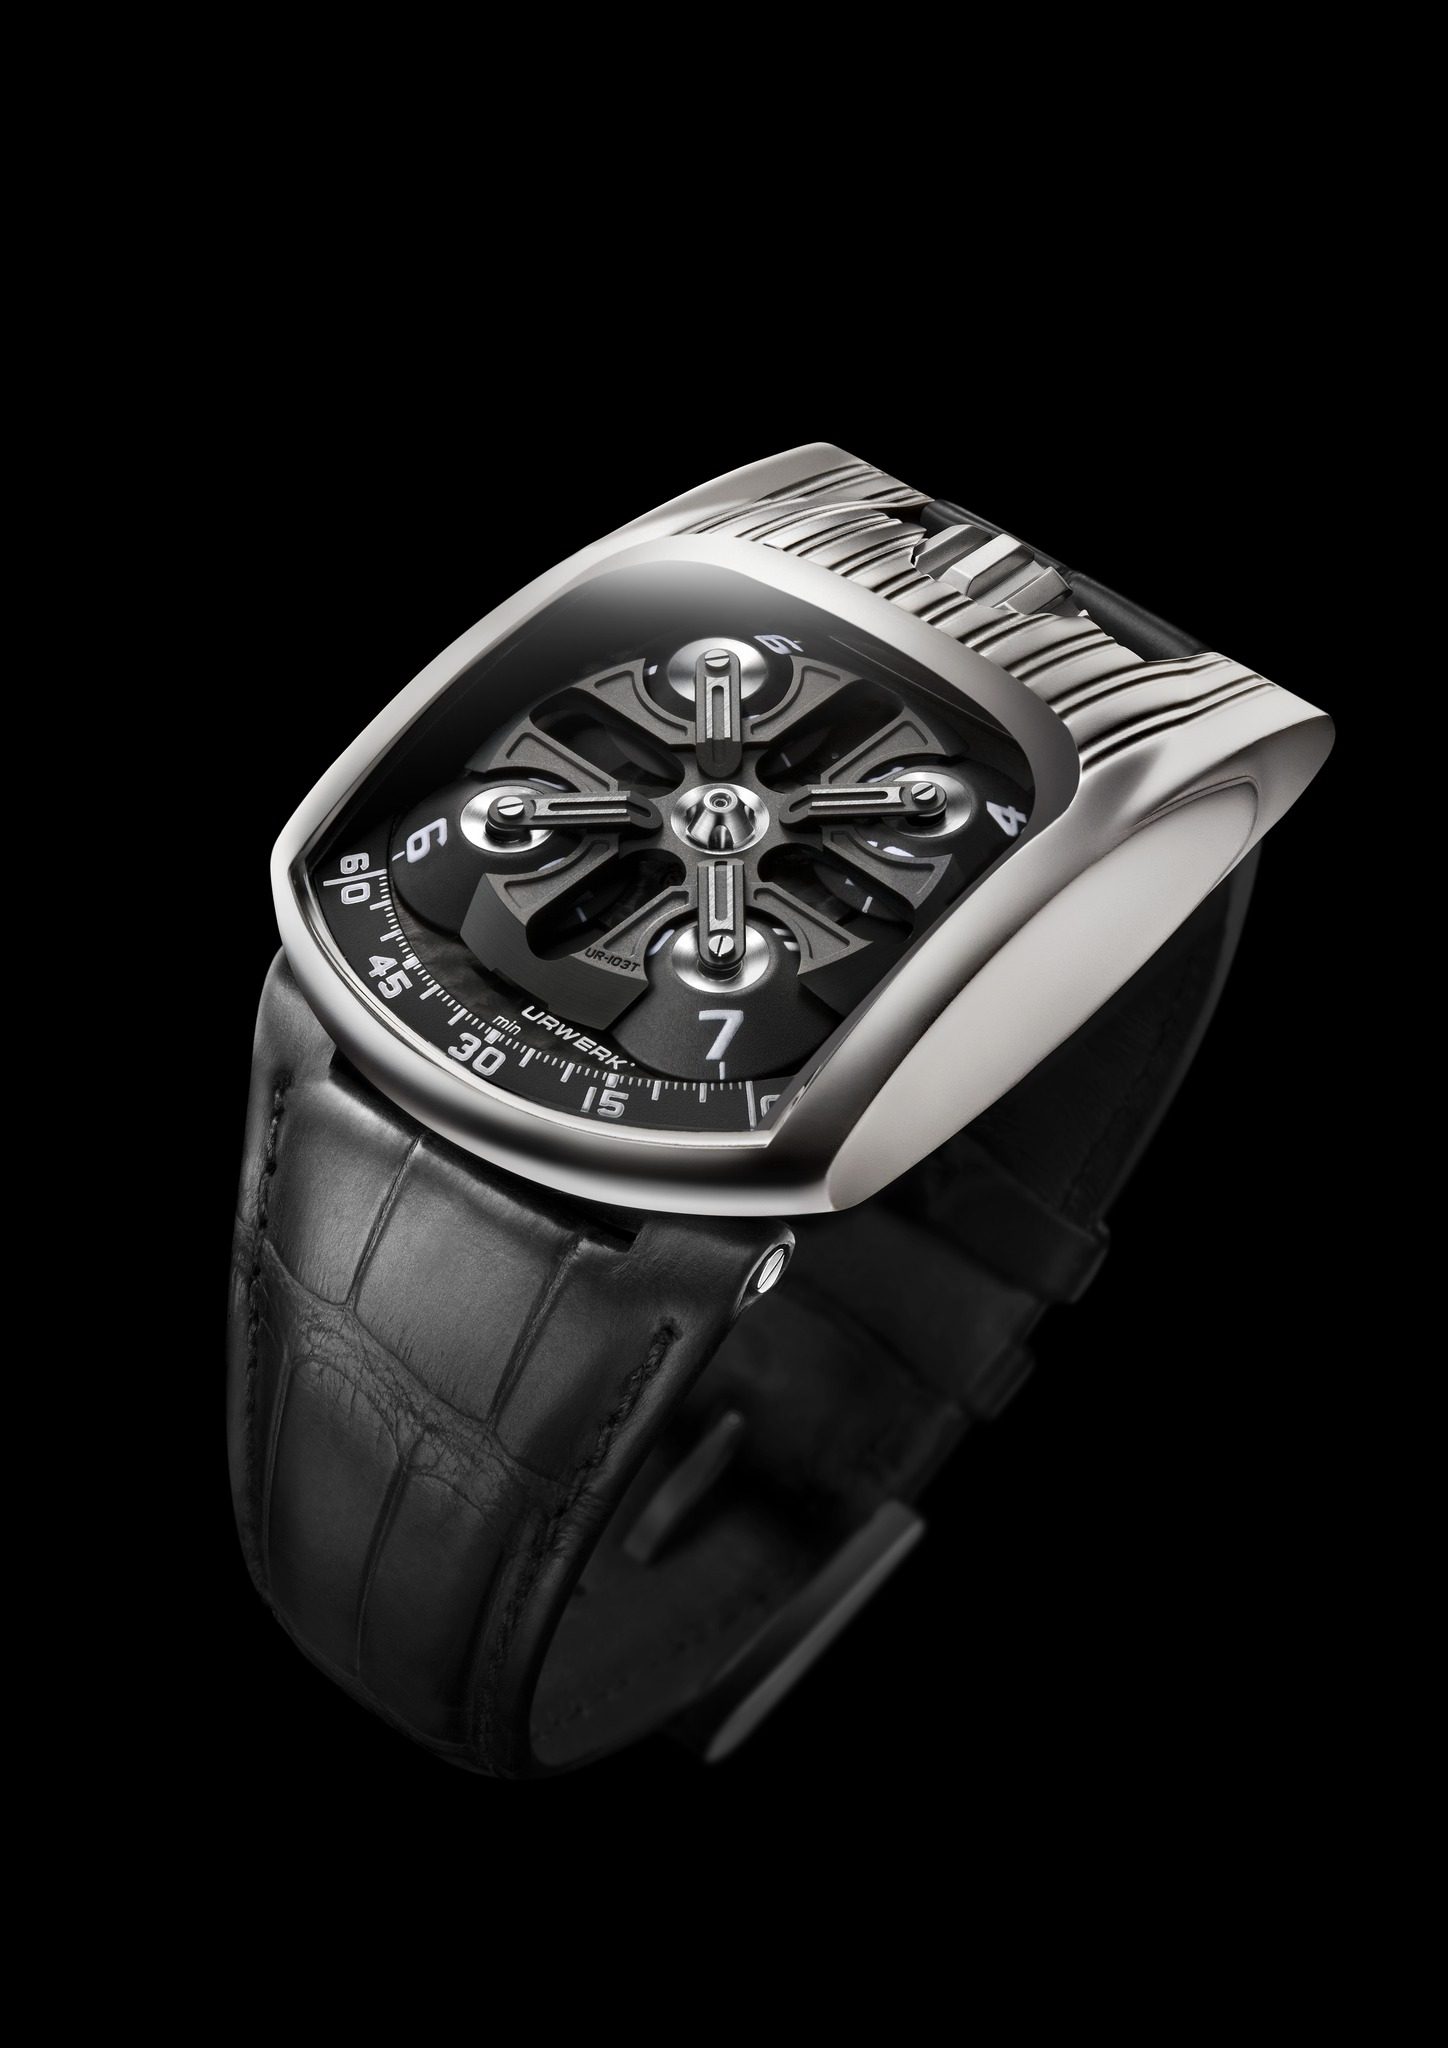 Replica Urwerk UR-103T White Gold Watch